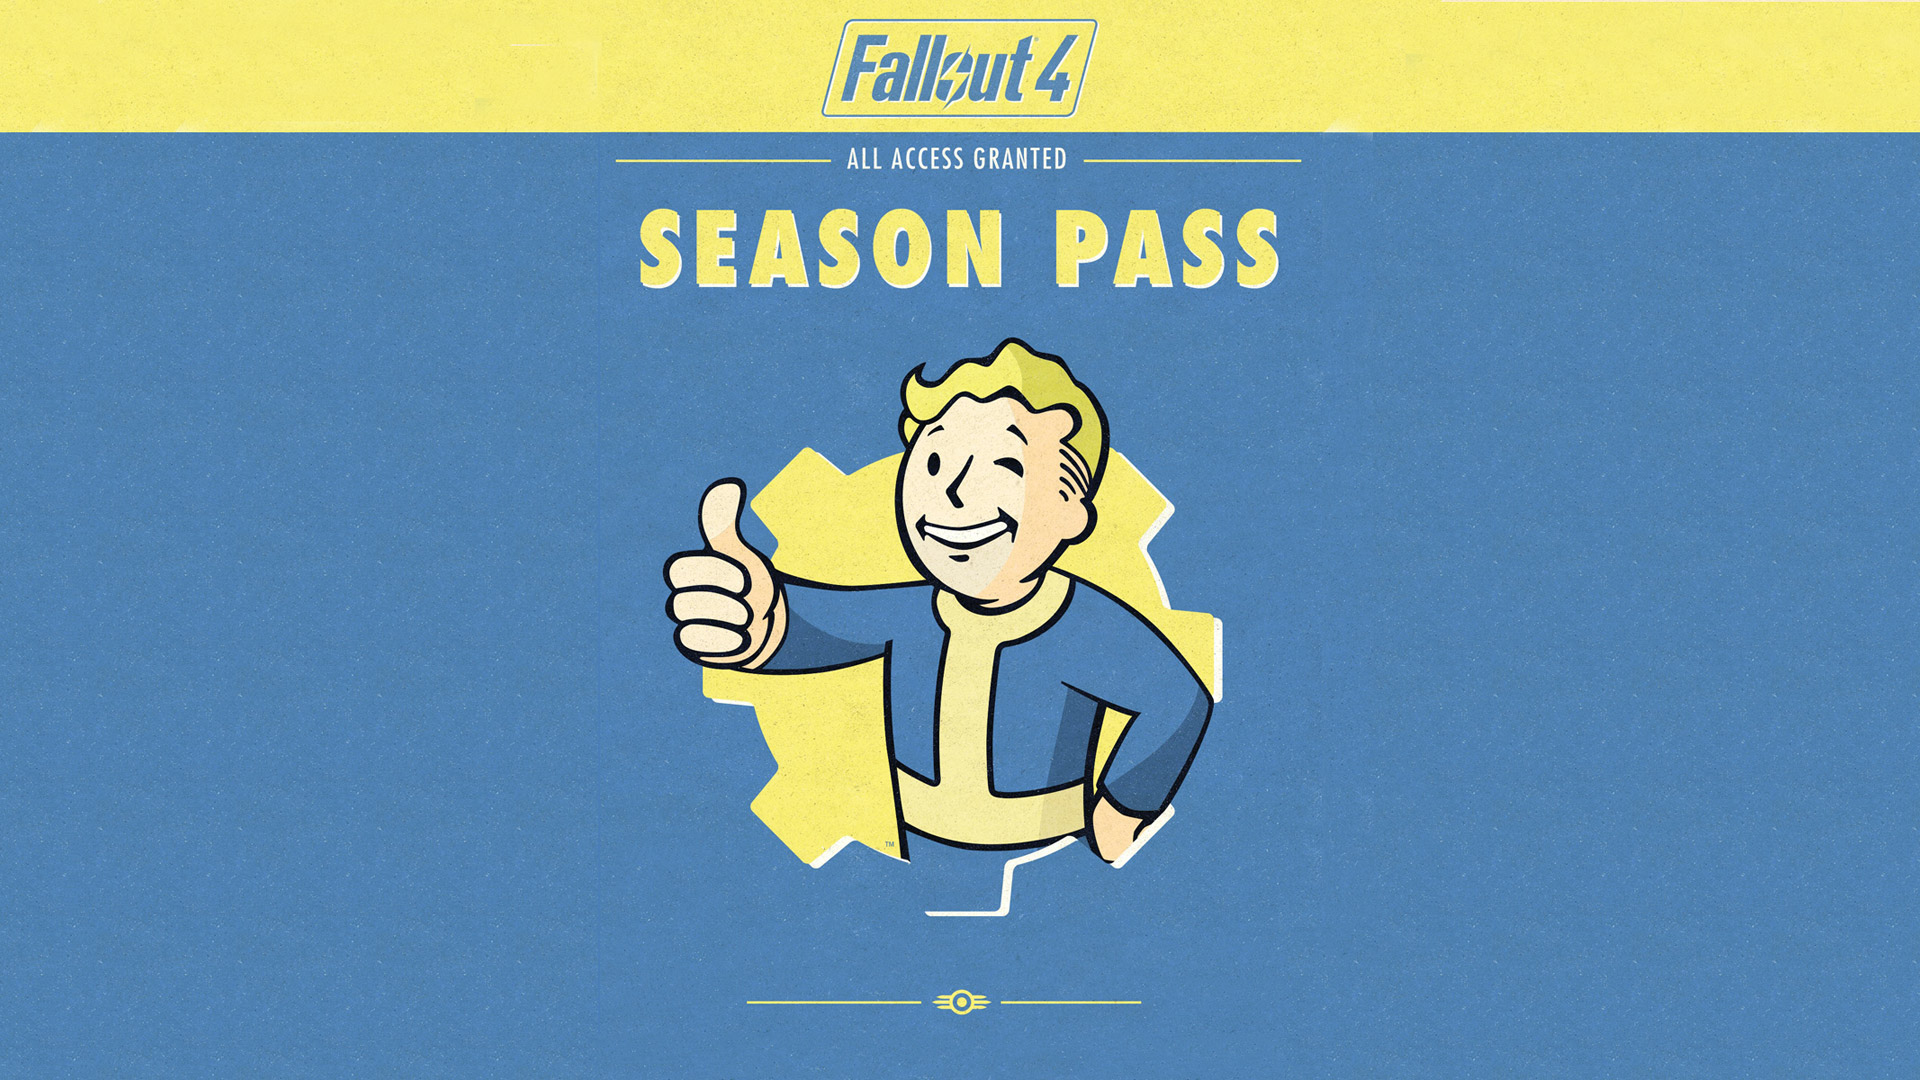 Fallout 4 Wallpaper in 1920x1080